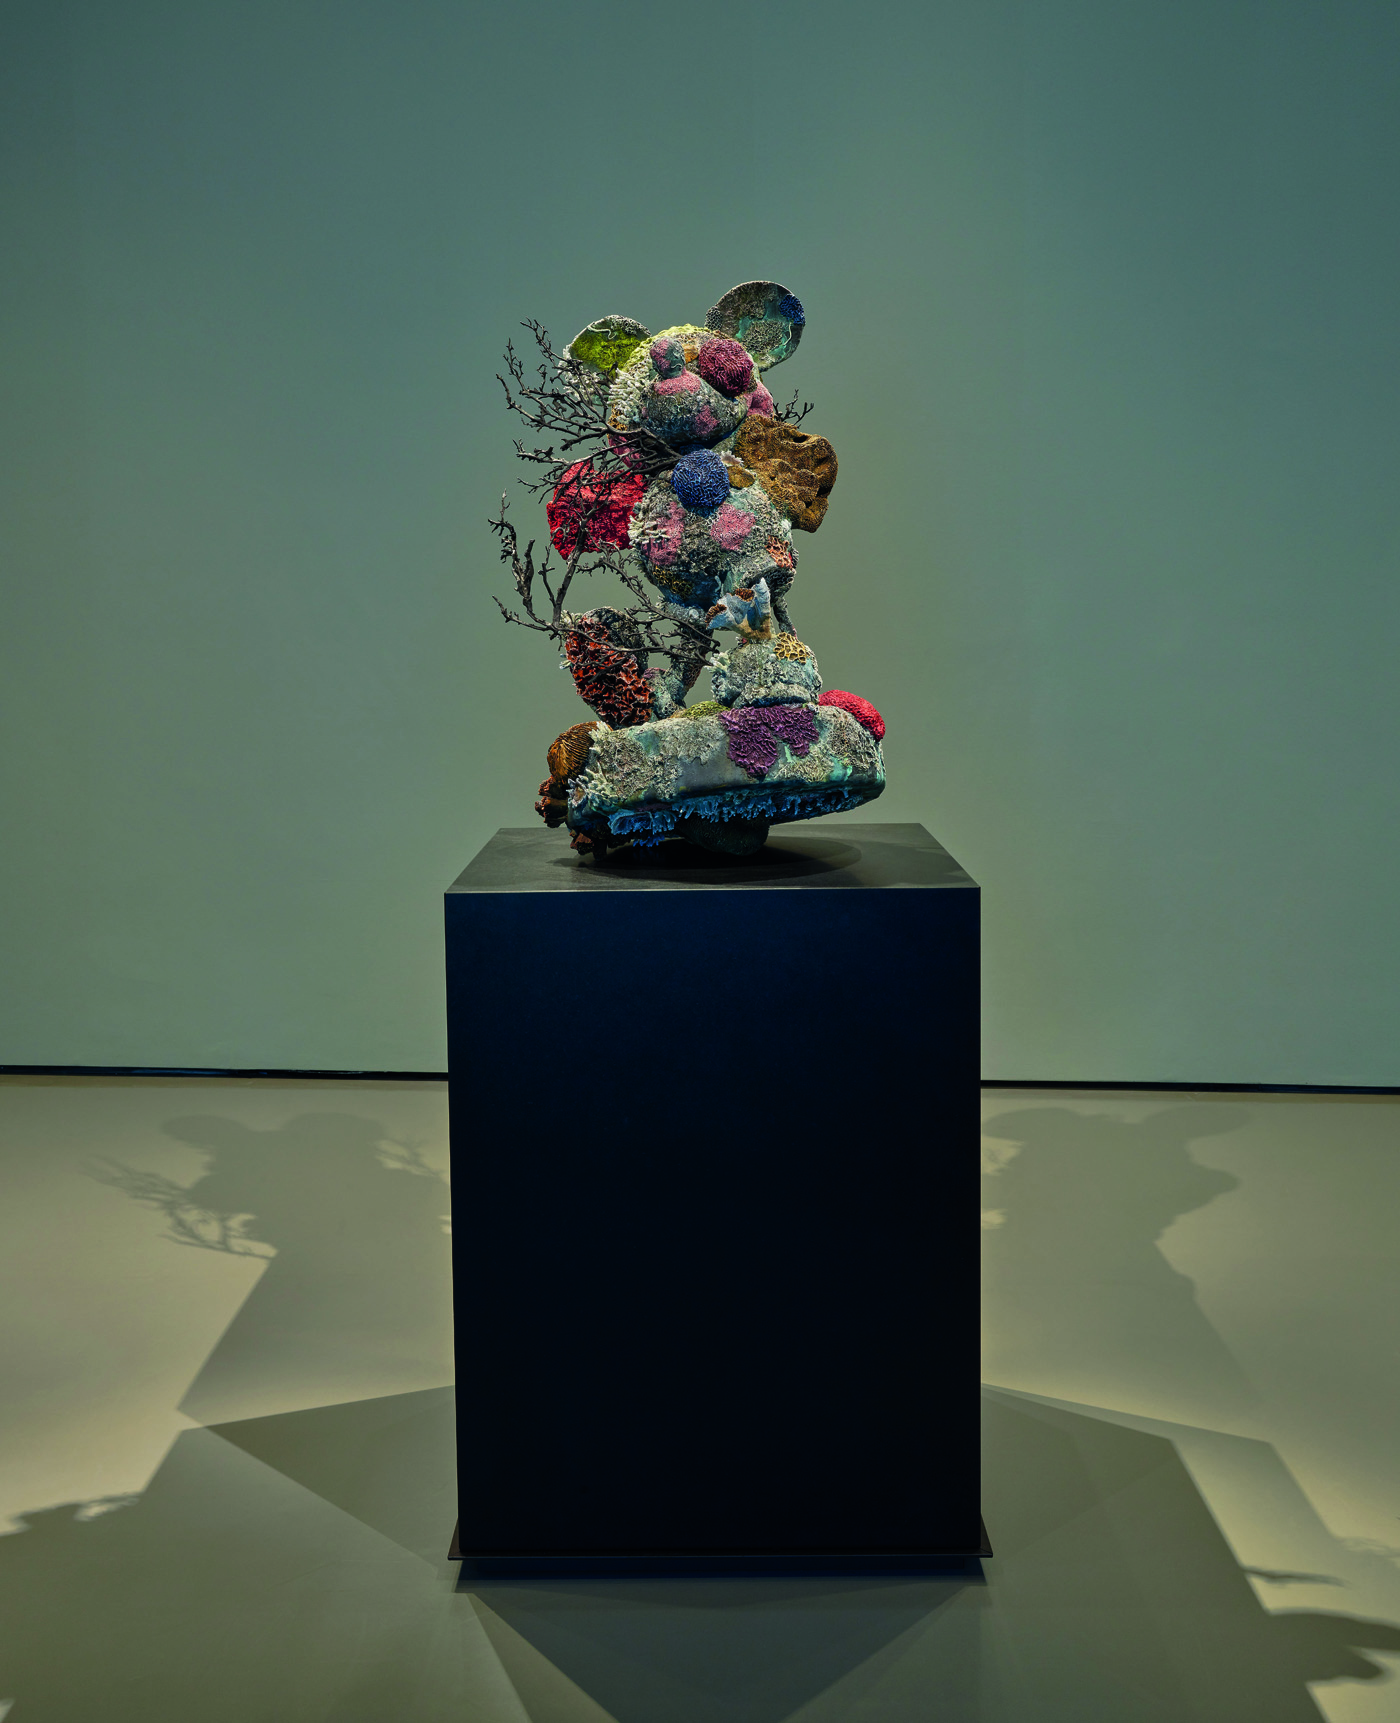 Damien Hirst. Treasures from the Wreck of Unbelievable, Palazzo Grassi. Damien Hirst, Mickey. Foto: Prudence Cuming Associates. © Damien Hirst and Science Ltd. All rights reserved, DACS 2017